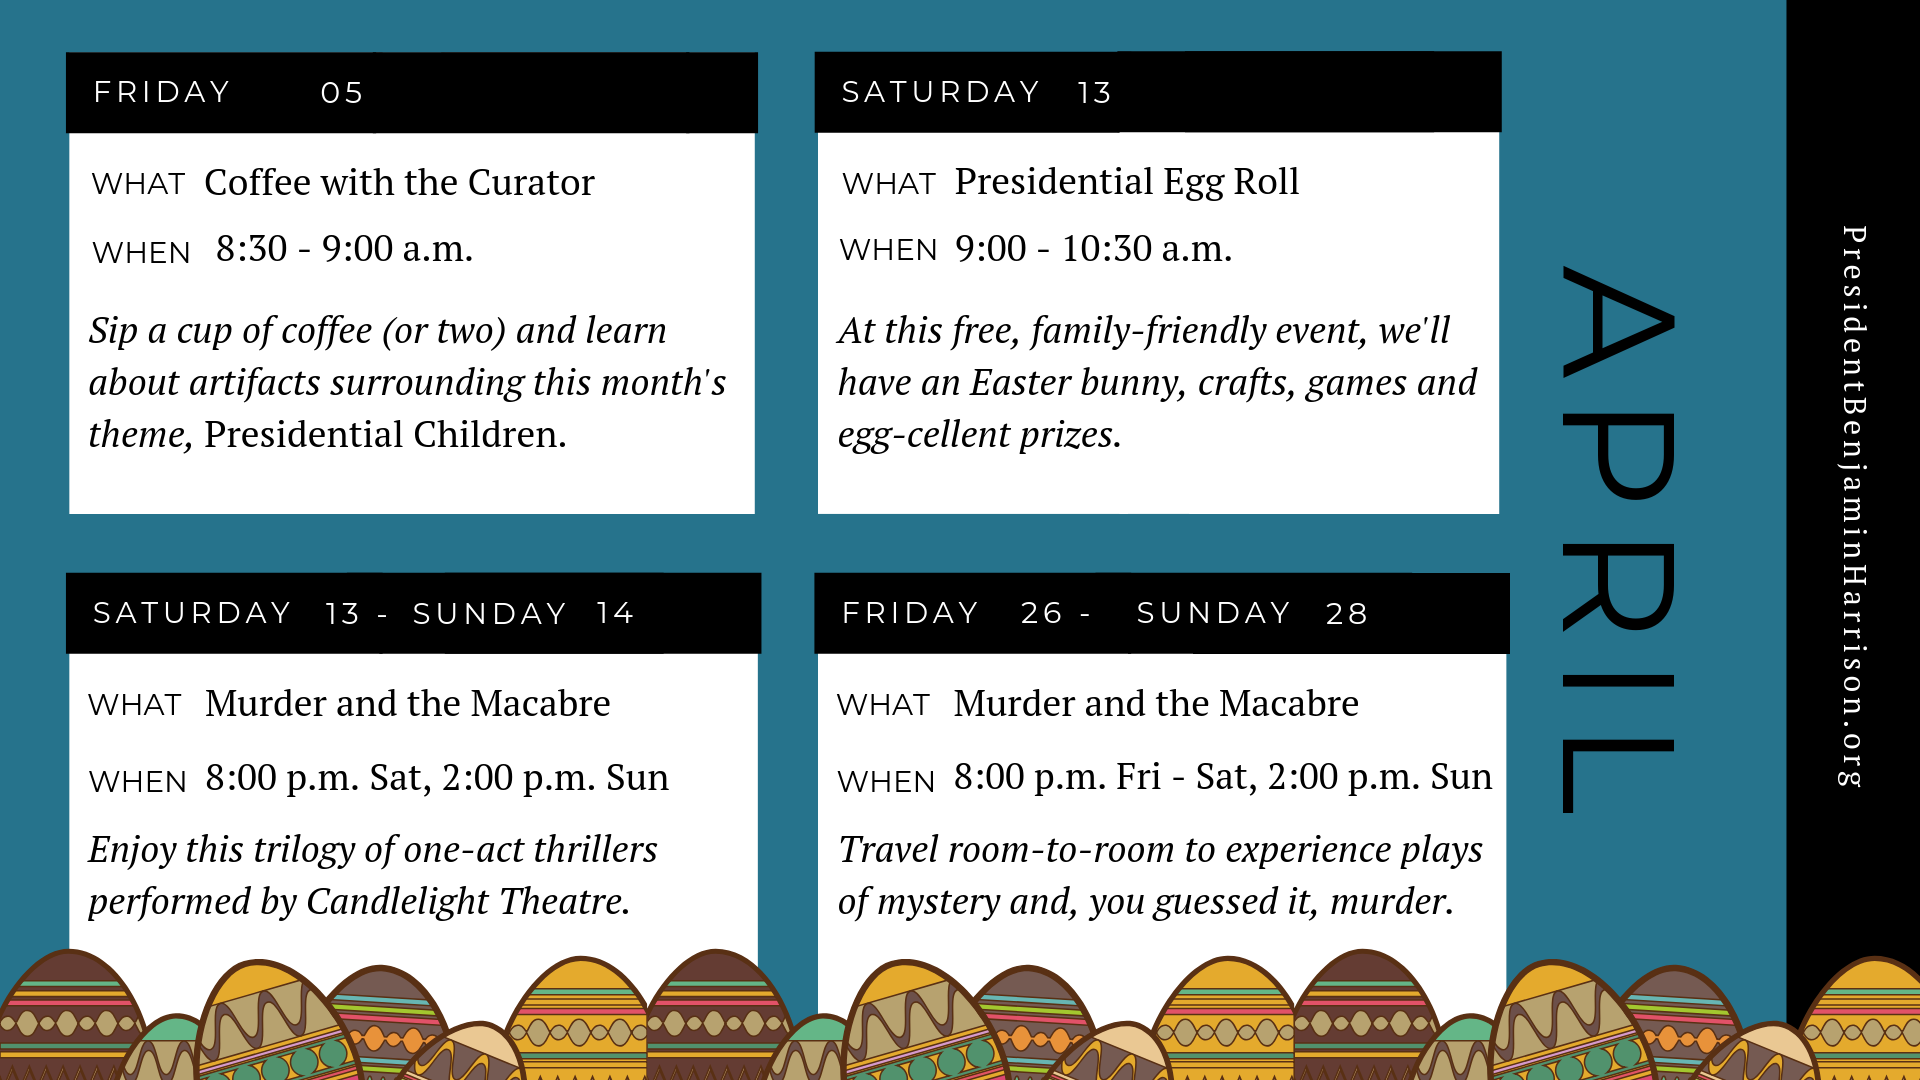 Graphic image of a planner for april. The planner reads, Friday the fifth of april. What. Coffee with the curator. When. 8:30 to 9 a.m. Sip a cup of coffee (or two) and learn about artifacts surrounding this month's theme, presidential children. Saturday, the thirteenth of april. What. Presidential egg roll. When. 9 to 10:30 a.m. At this free, family-friendly event, we'll have an easter bunny, crafts, games, and egg-cellent prizes. Saturday april thirteenth to sunday april fourteenth. What. Murder and the macabre. When. 8 p.m. saturday to two p.m. sunday. Enjoy this trilogy of one-act thrillers performed by candlelight theatre. Friday april twenty sixth to sunday april twenty eighth. What. Murder and the macabre. When. 8 p.m. friday to saturday 2 p.m. sunday. Travel room-to-room to experience plays of mystery and, you guessed, it, murder.